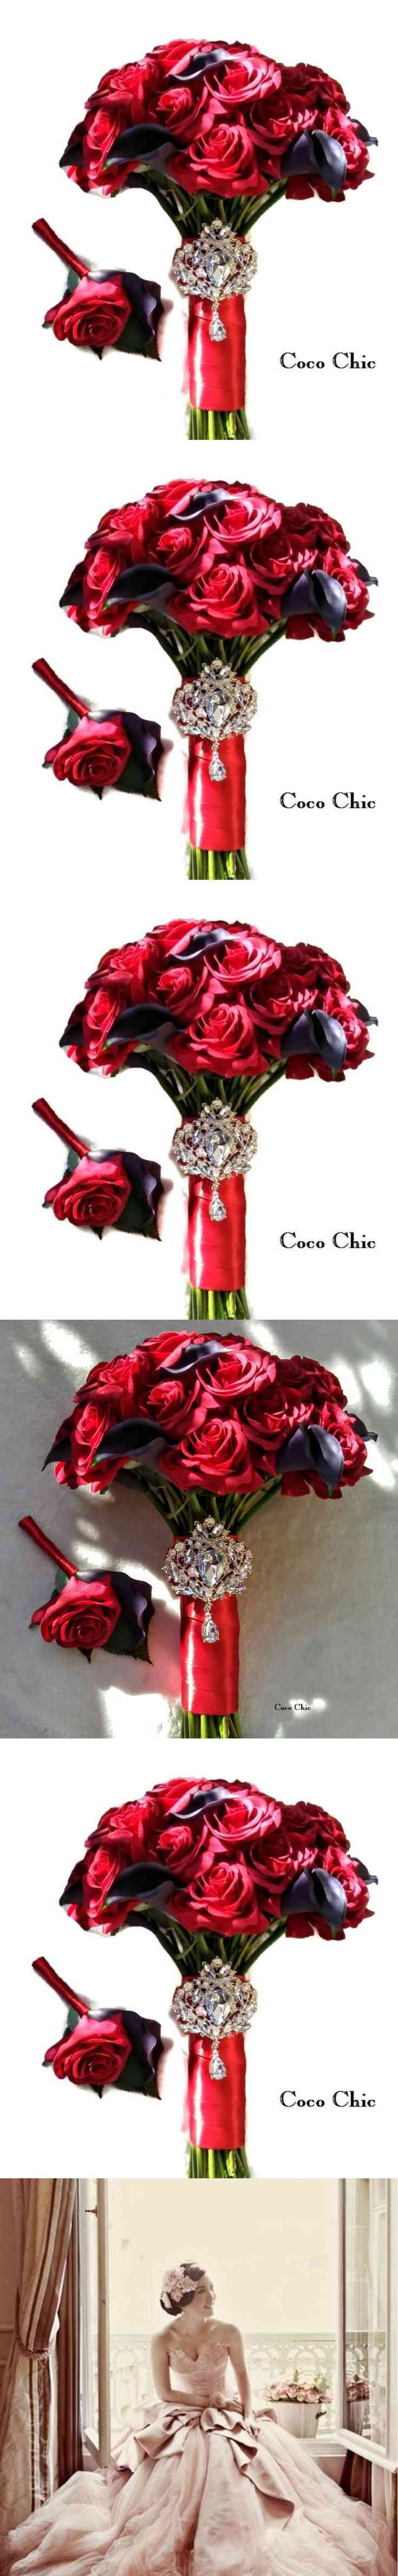 Christmas Wedding, Holiday wedding, Winter bouquet, Red roses for Valentine Day, Brooch Bouquet, Bridal, Bridesmaids Sets, Alternative bouquet for your special day to keep a memory alive (via pushapin.com)